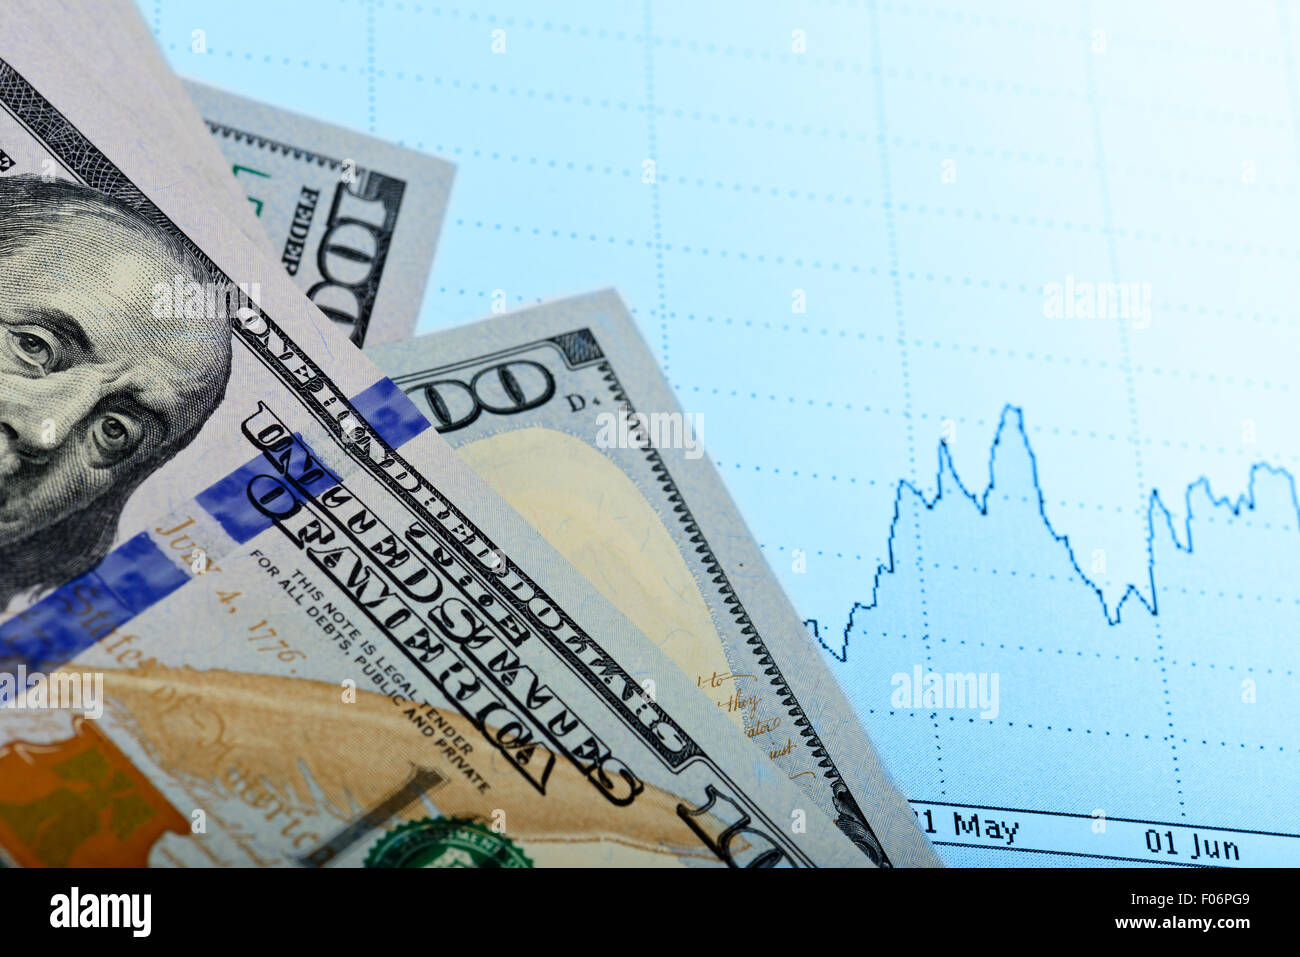 Billets en dollars US sur les tableaux financiers Photo Stock